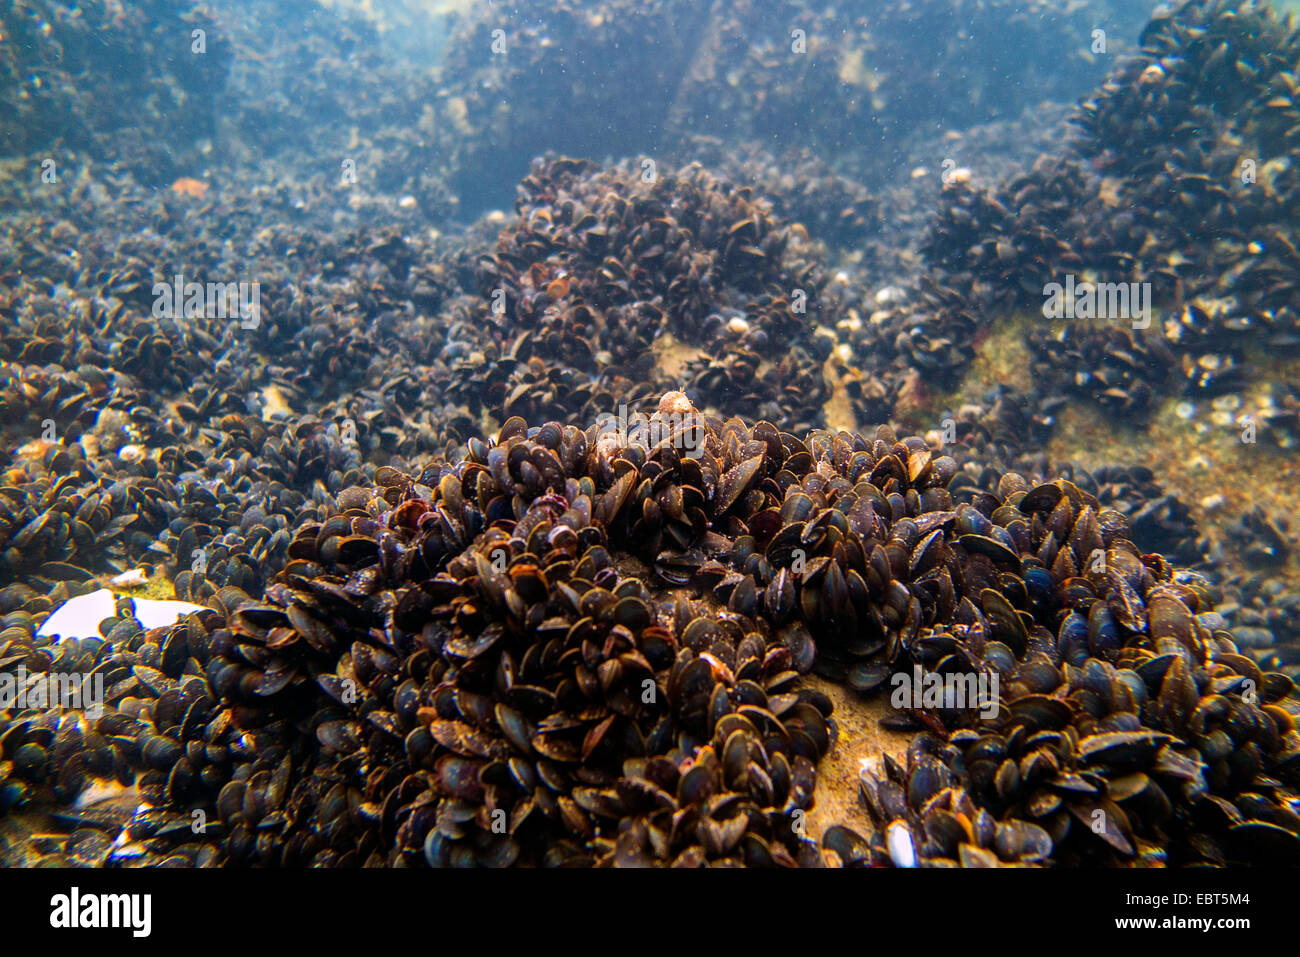 mussels (Mytiloidea), colony of blue mussels under water, Norway, Nordland - Stock Image